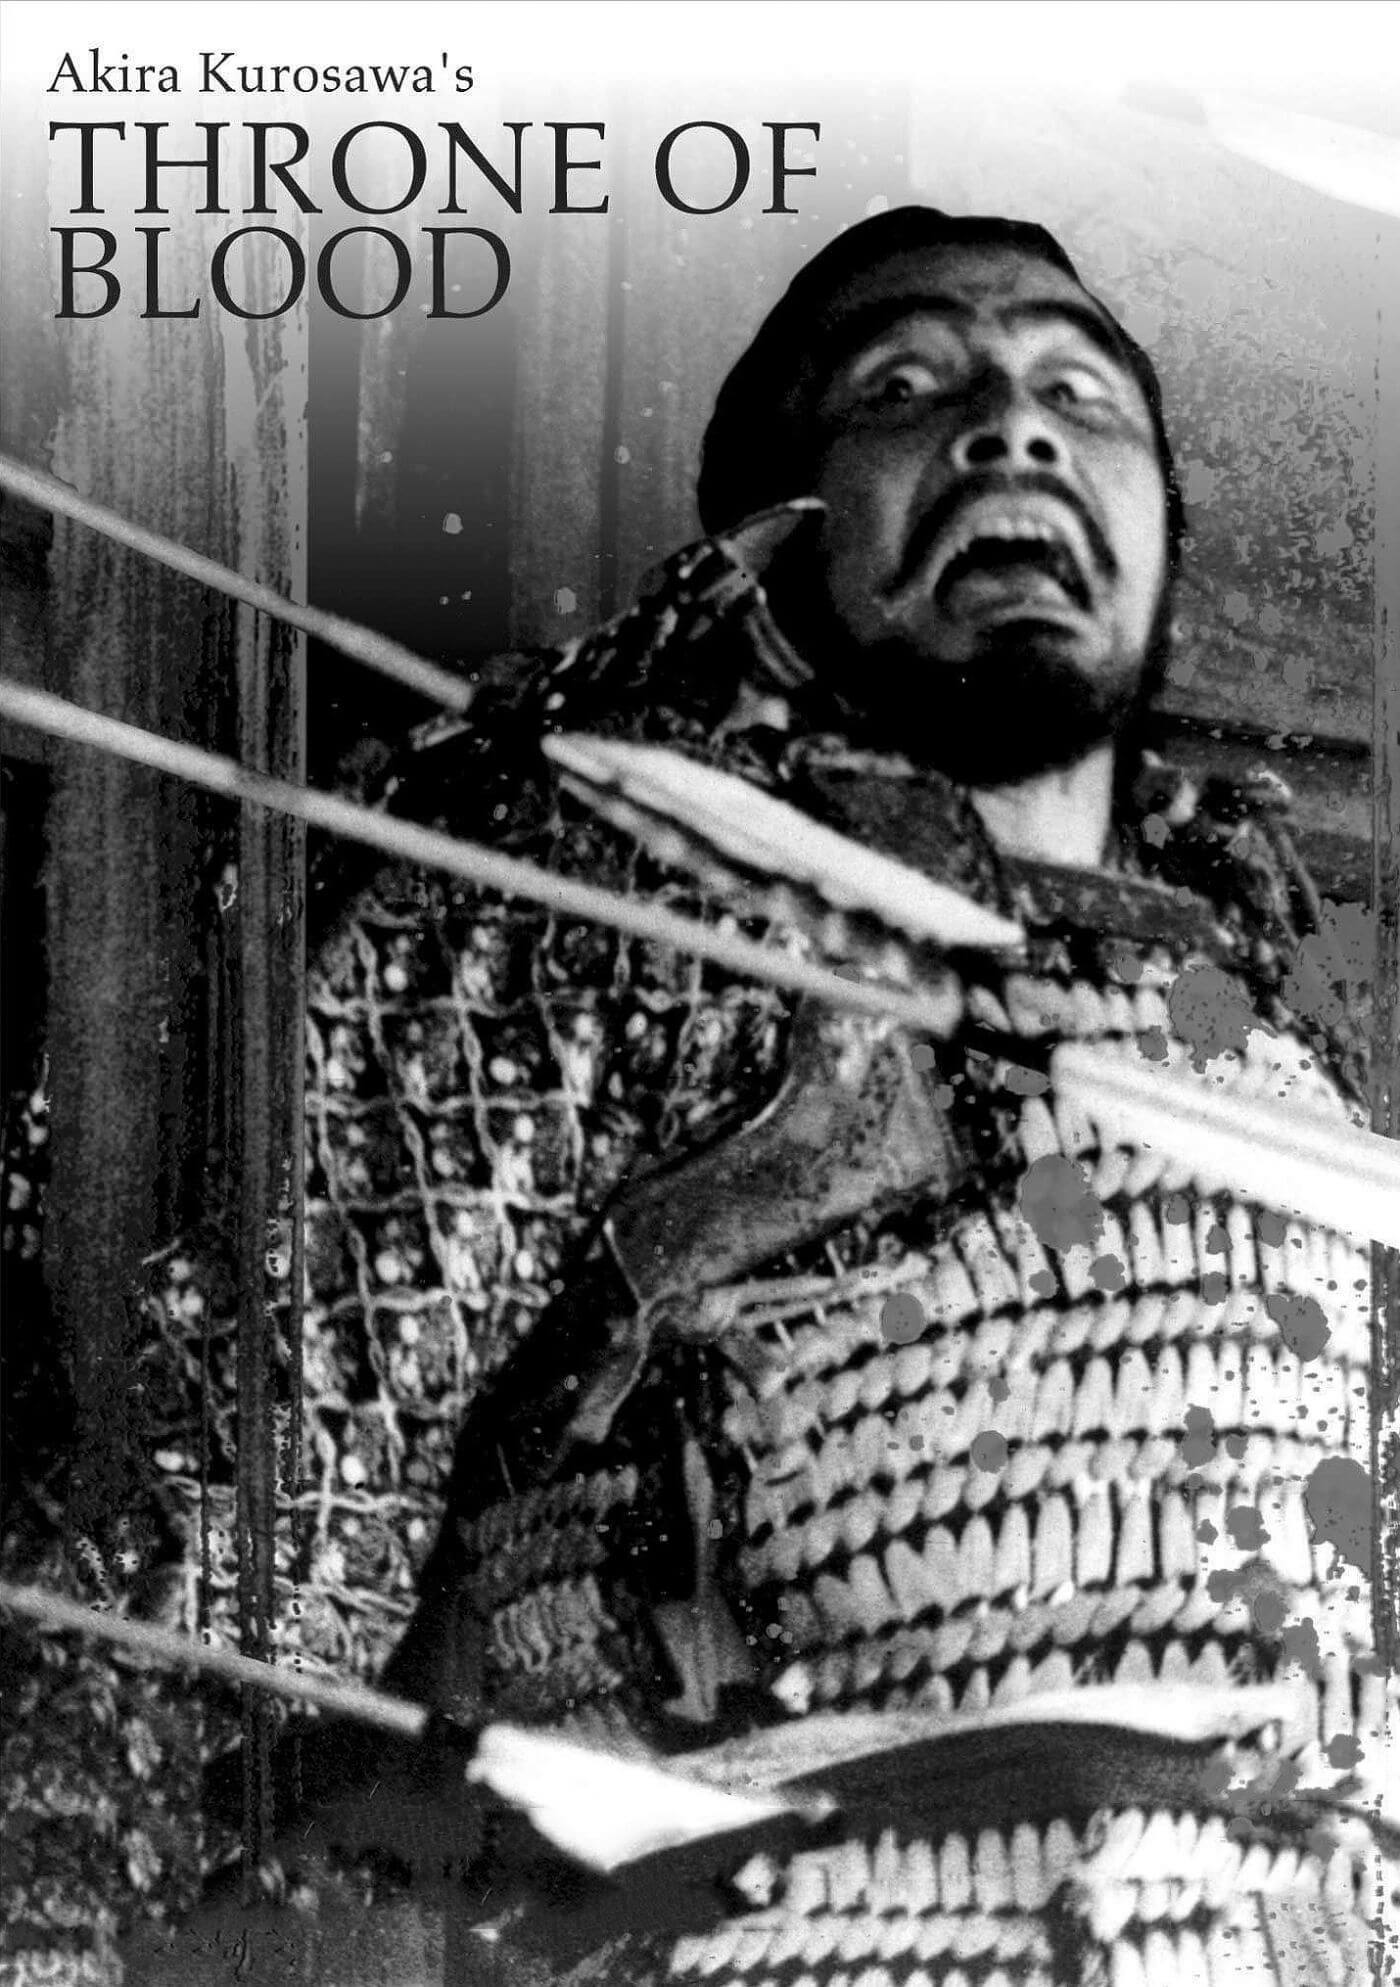 Throne Of Blood - Akira Kurosawa Japanese Cinema Masterpiece - Classic Movie Poster - Framed Prints